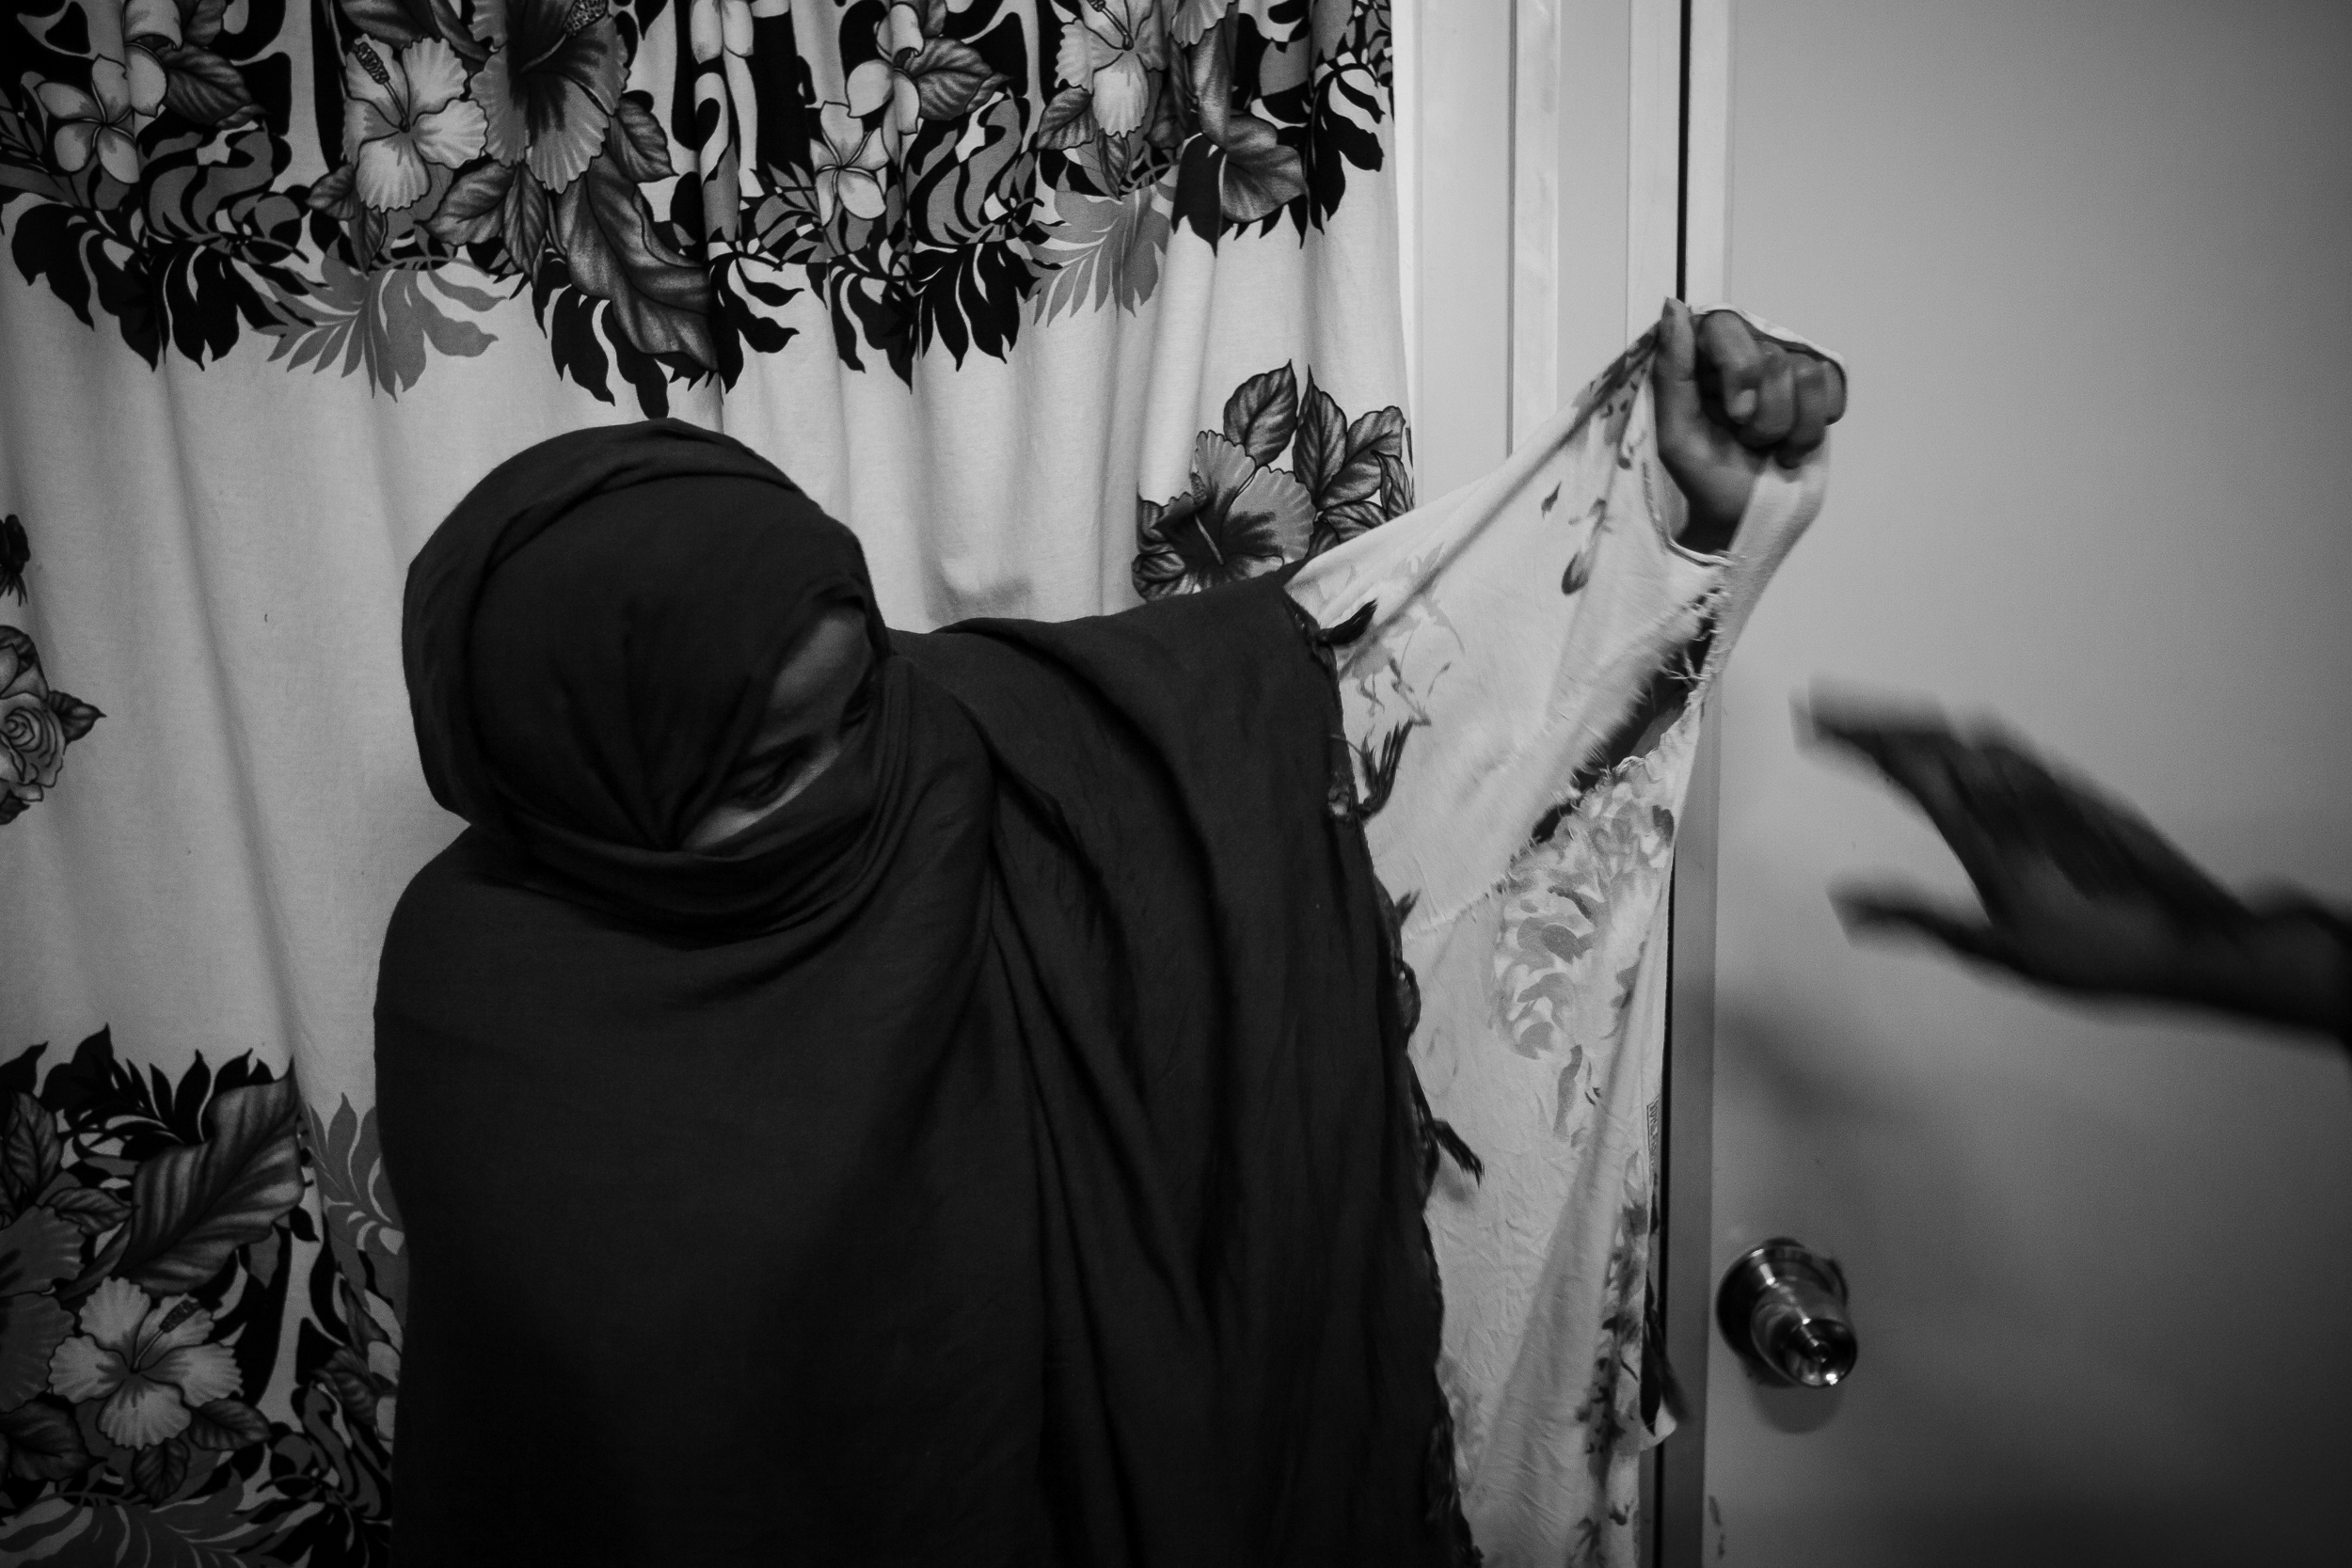 The single Somali women have forged close bonds, as they have no one else to rely on in such a foreign place. They told me they sleep wearing jeans because it will make it harder to be raped. In 2016, one of the Somalis set herself on fire in a horrific act of despair.